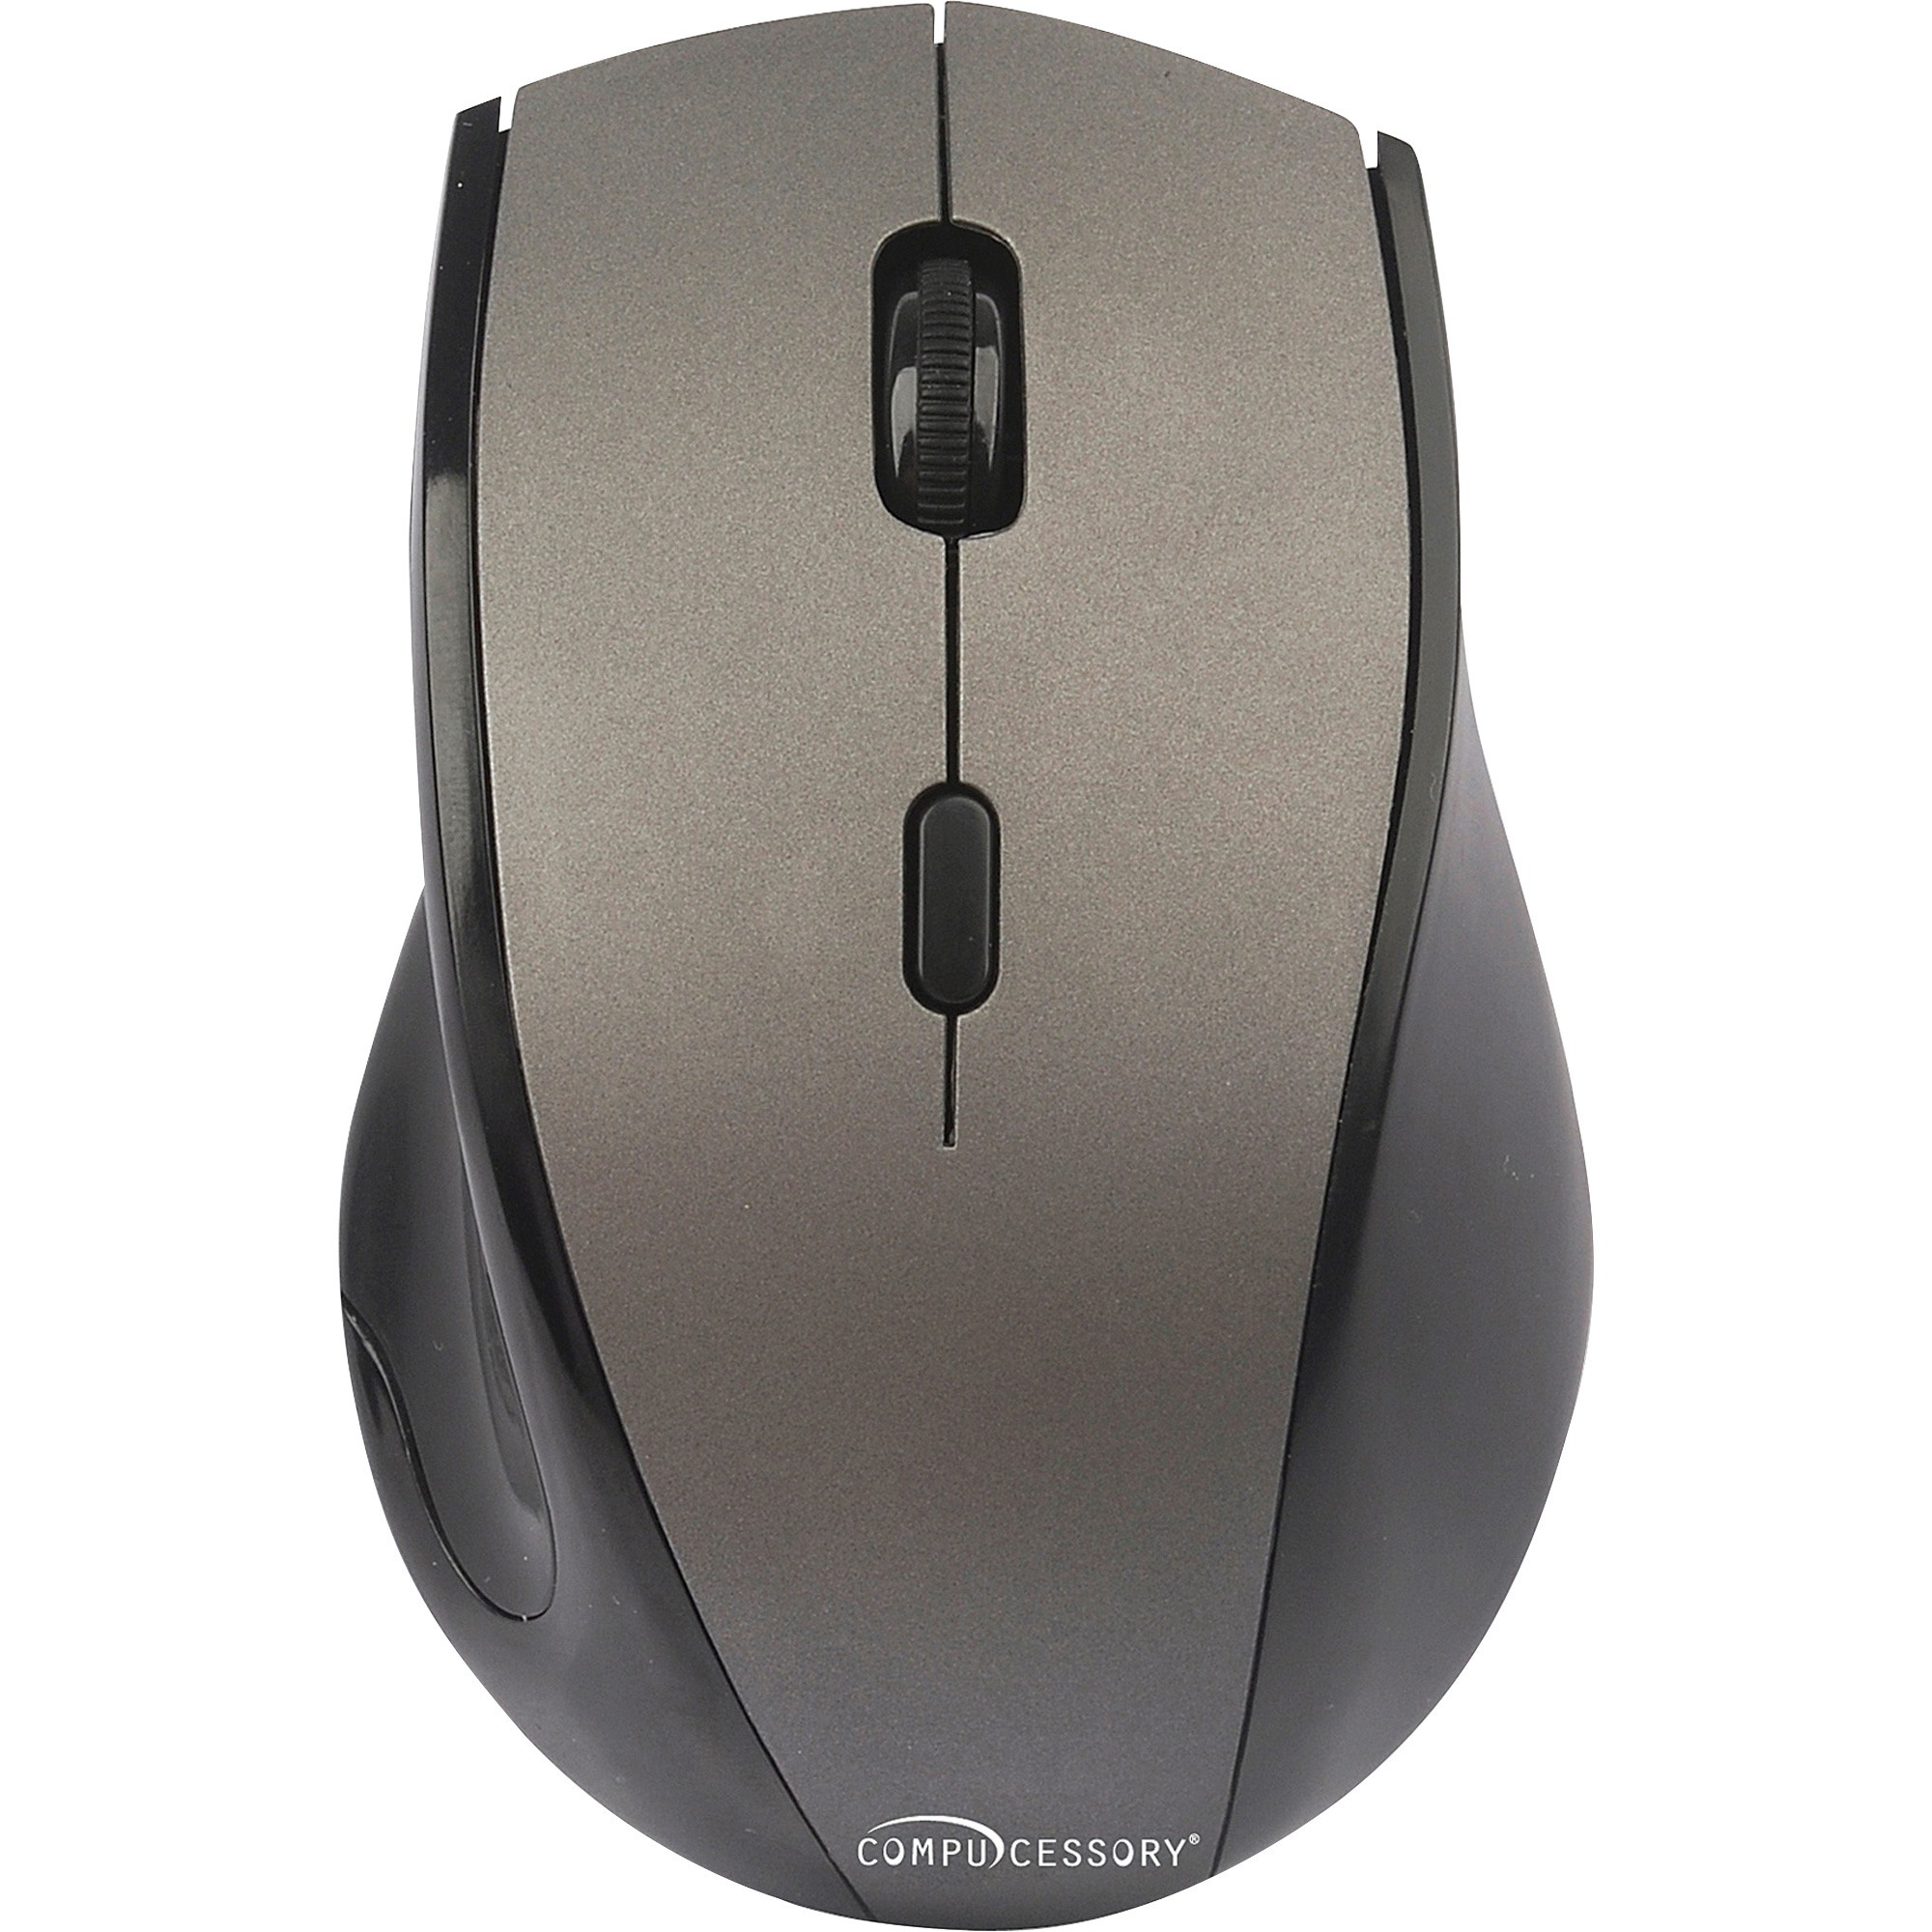 Compucessory VTrack 5-button Wireless Mouse - V-Track - Wireless - Radio  Frequency - Gray - 2000 dpi - Tilt Wheel - 6 Button(s)